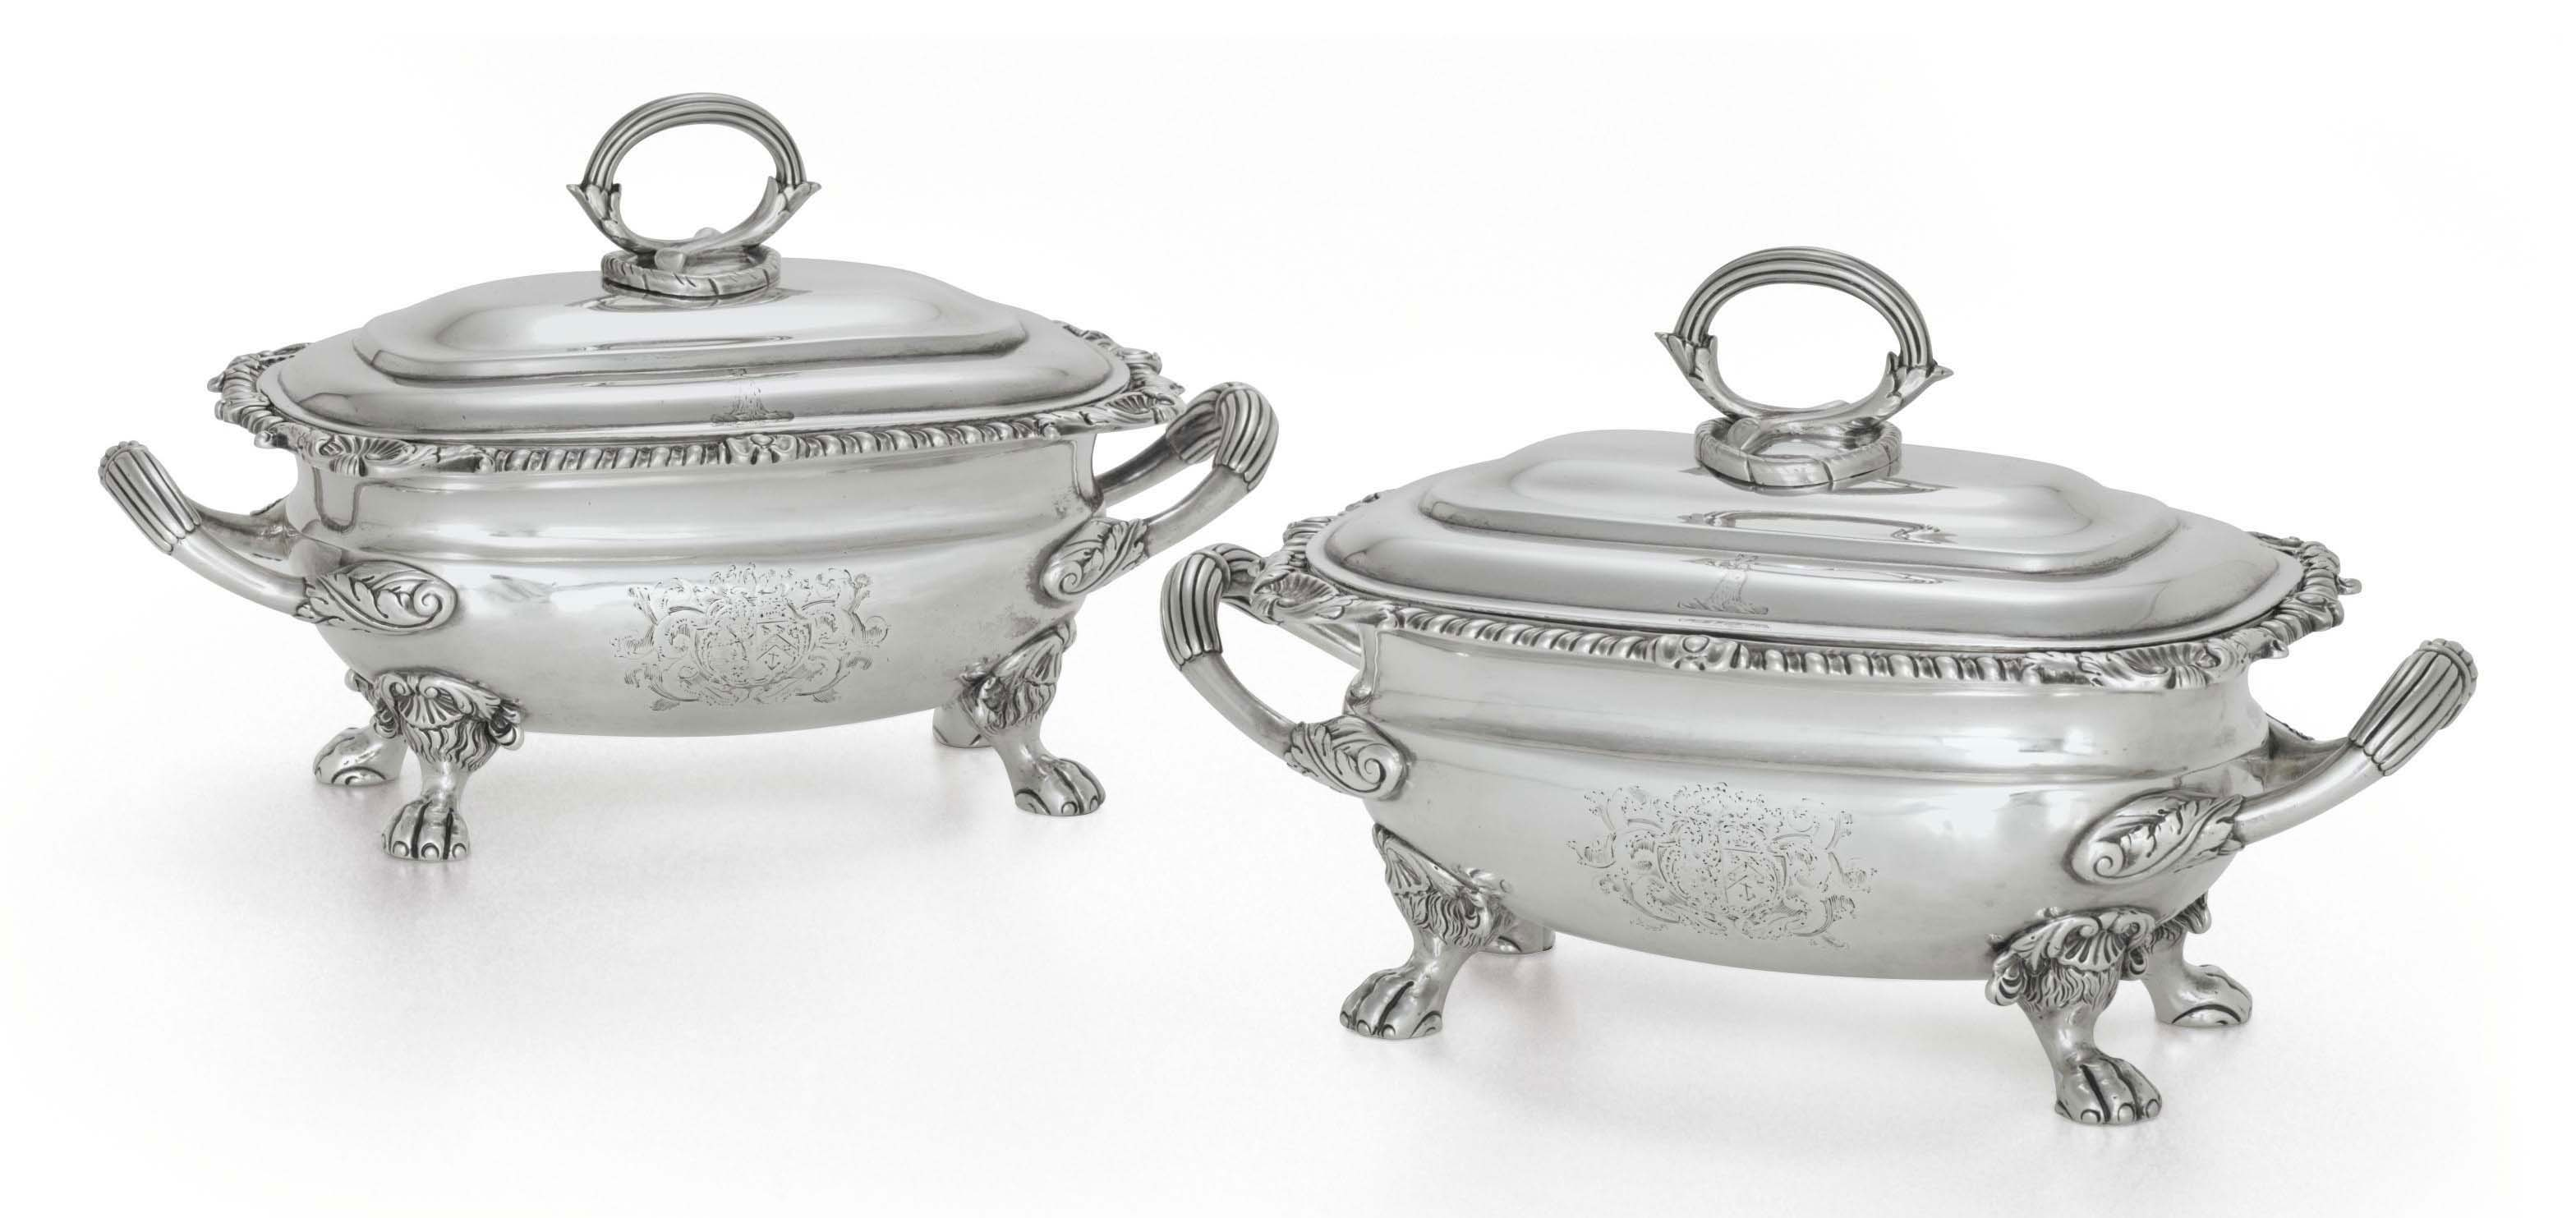 A PAIR OF GEORGE III SILVER SAUCE TUREENS